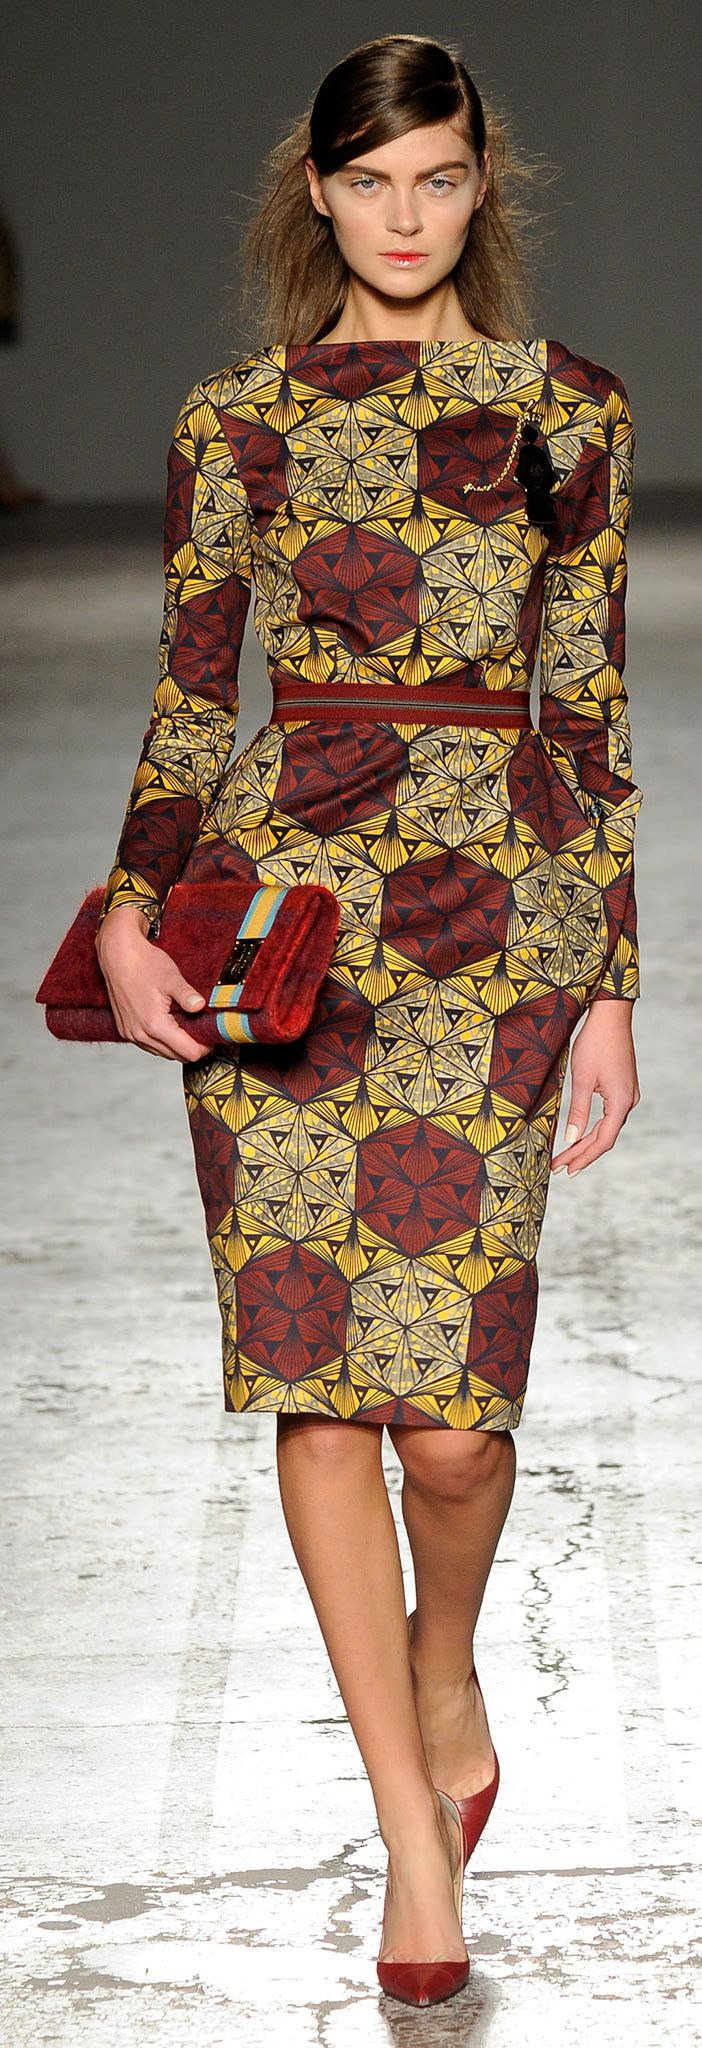 Stella Jean - Fall 2014 with <3 from JDzigner www.jdzigner.com